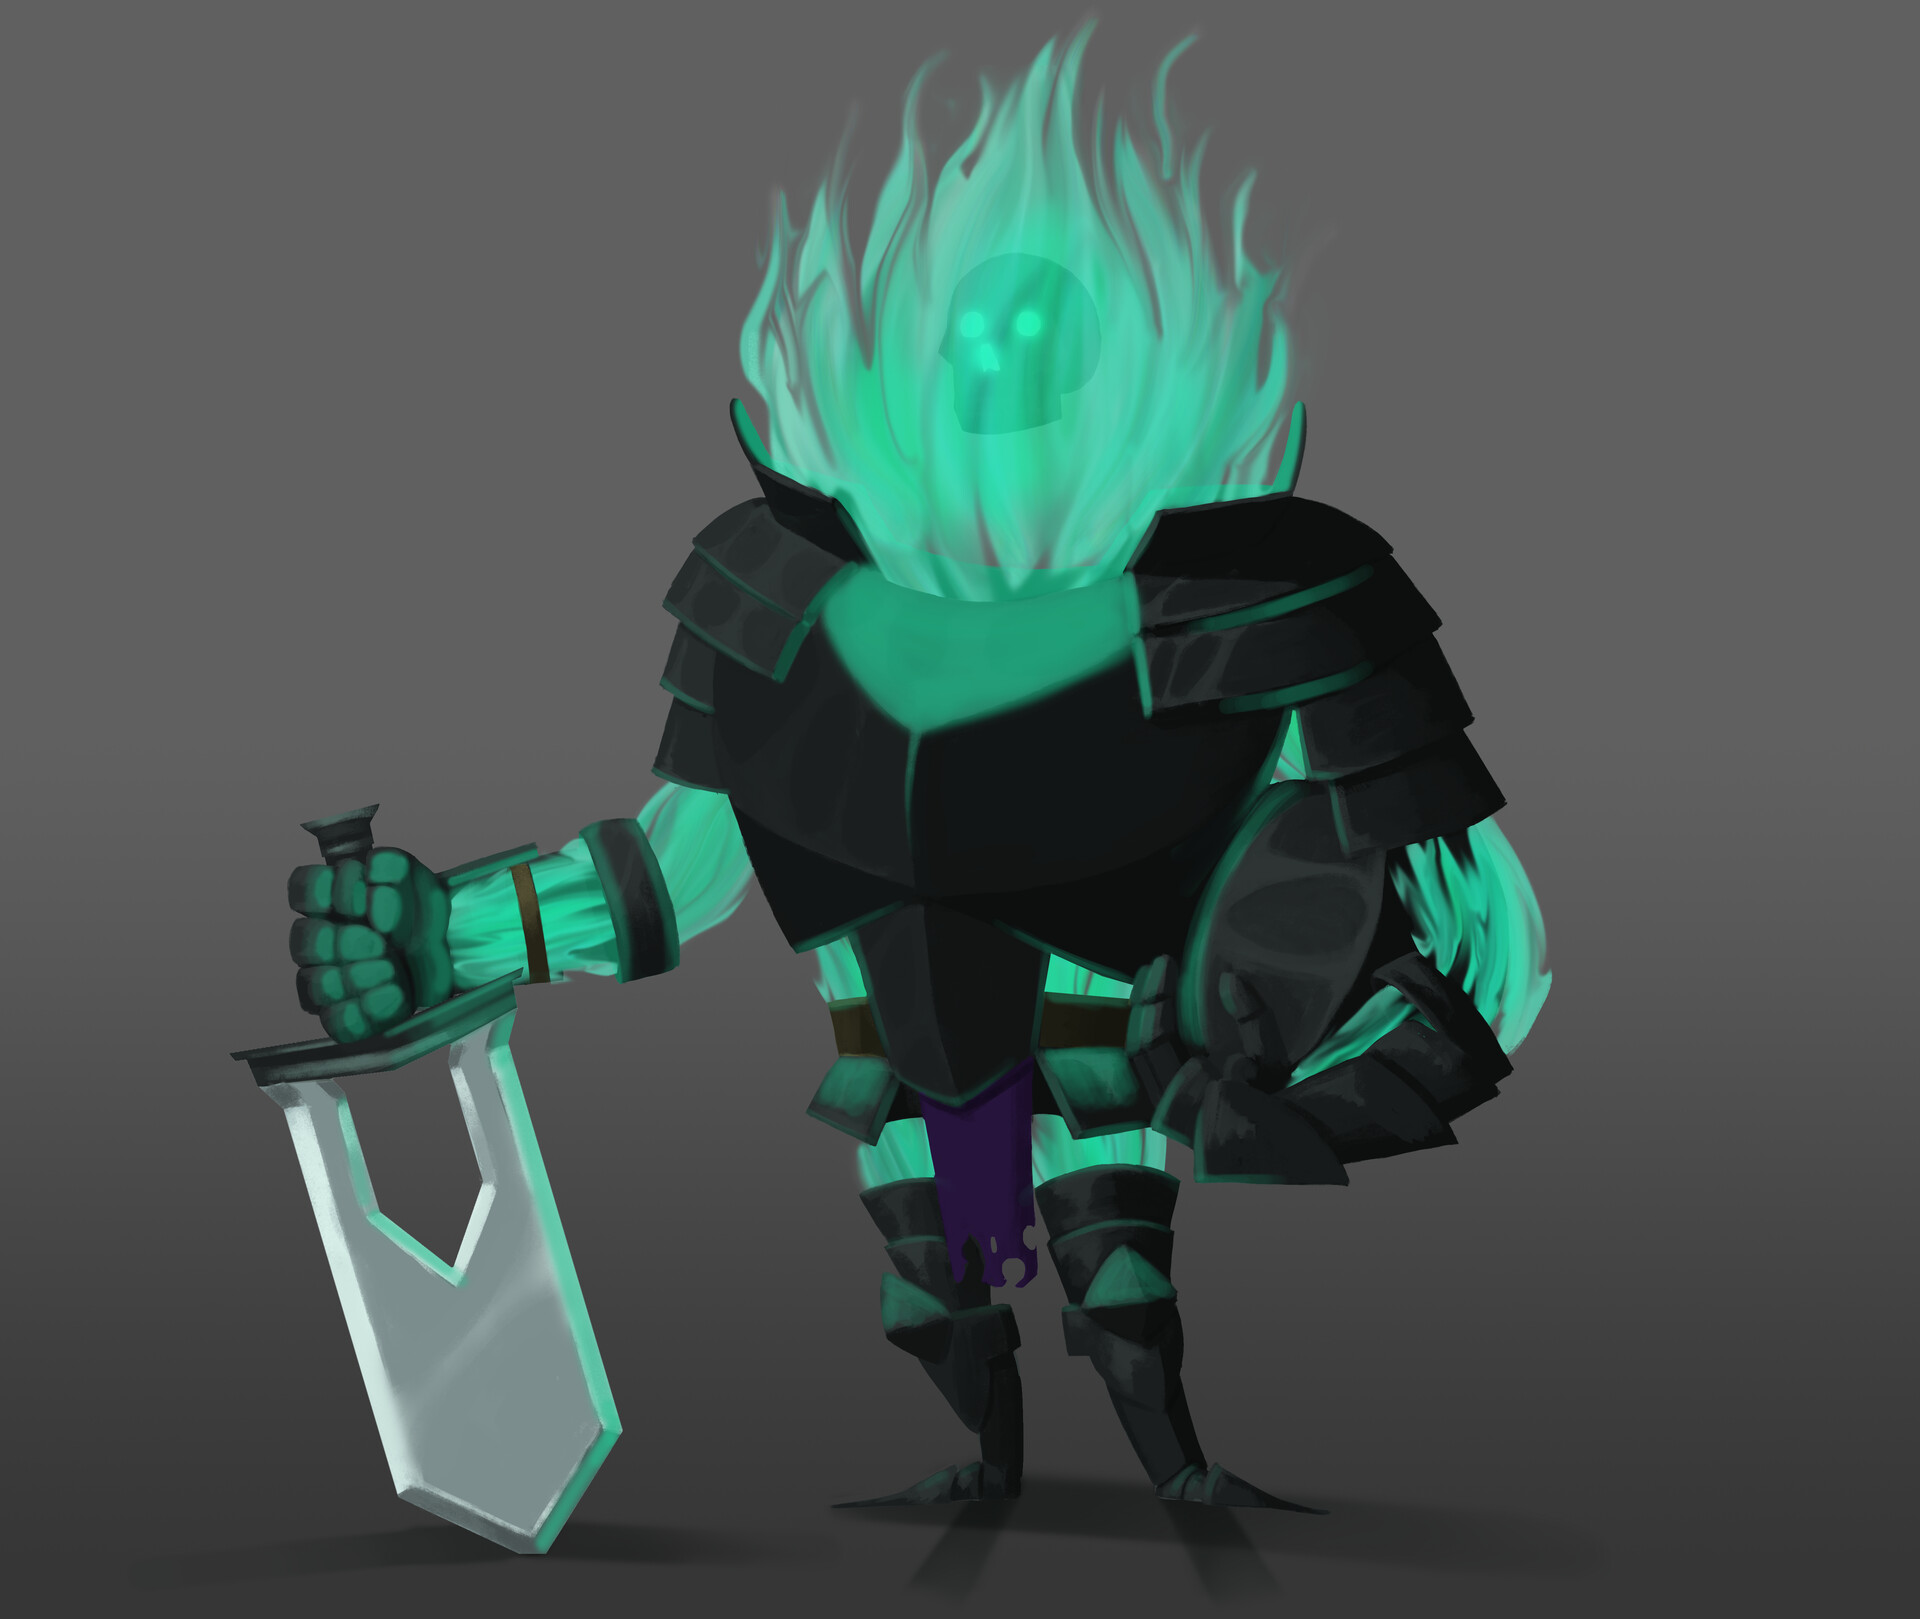 Sir Ghosty of the Armor Realm